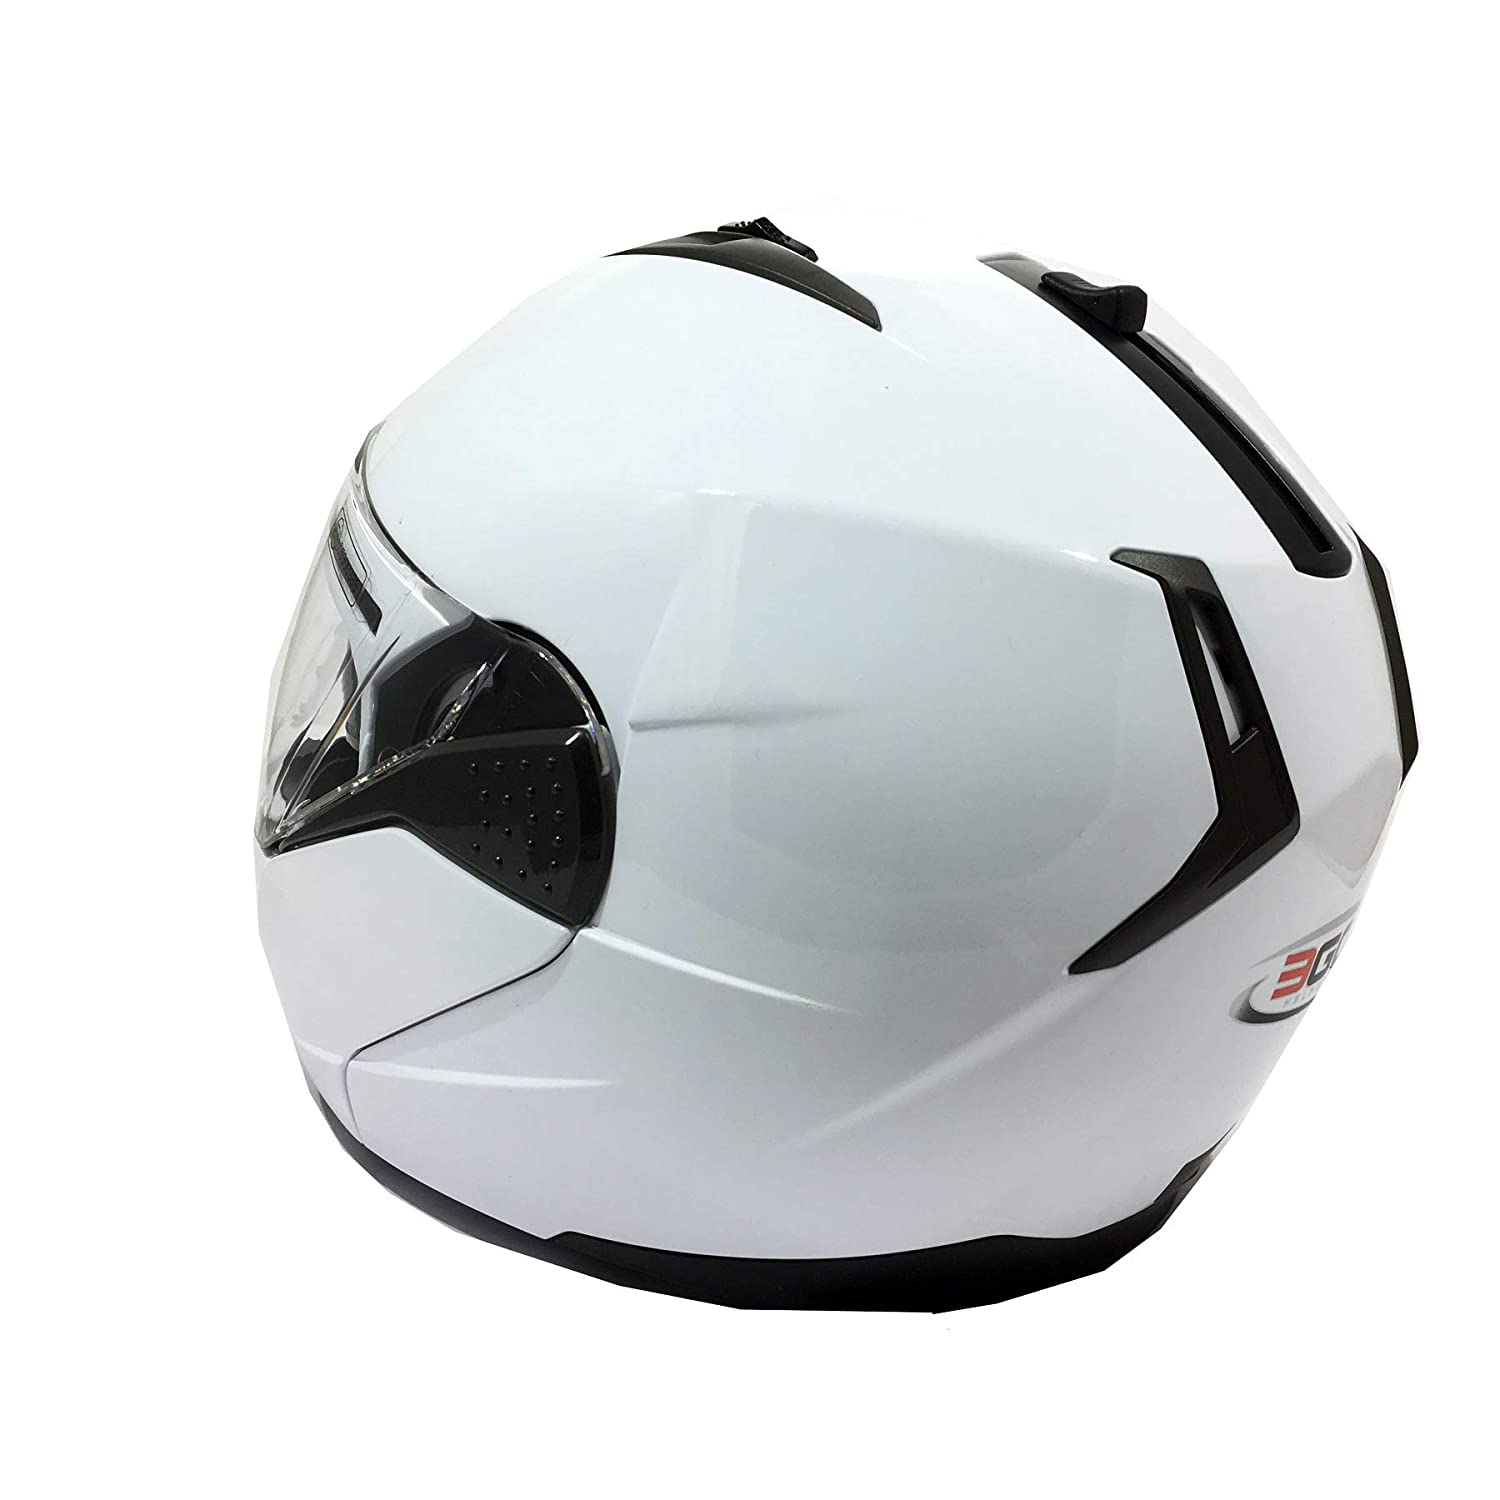 White, M 3GO E335 Motorbike Adventure Riding ECE ACU Gold Approved Touring Flip Front Helmets with Dual Visor Vented Noise Reducing Lining Flip Up Motorcycle Helmet